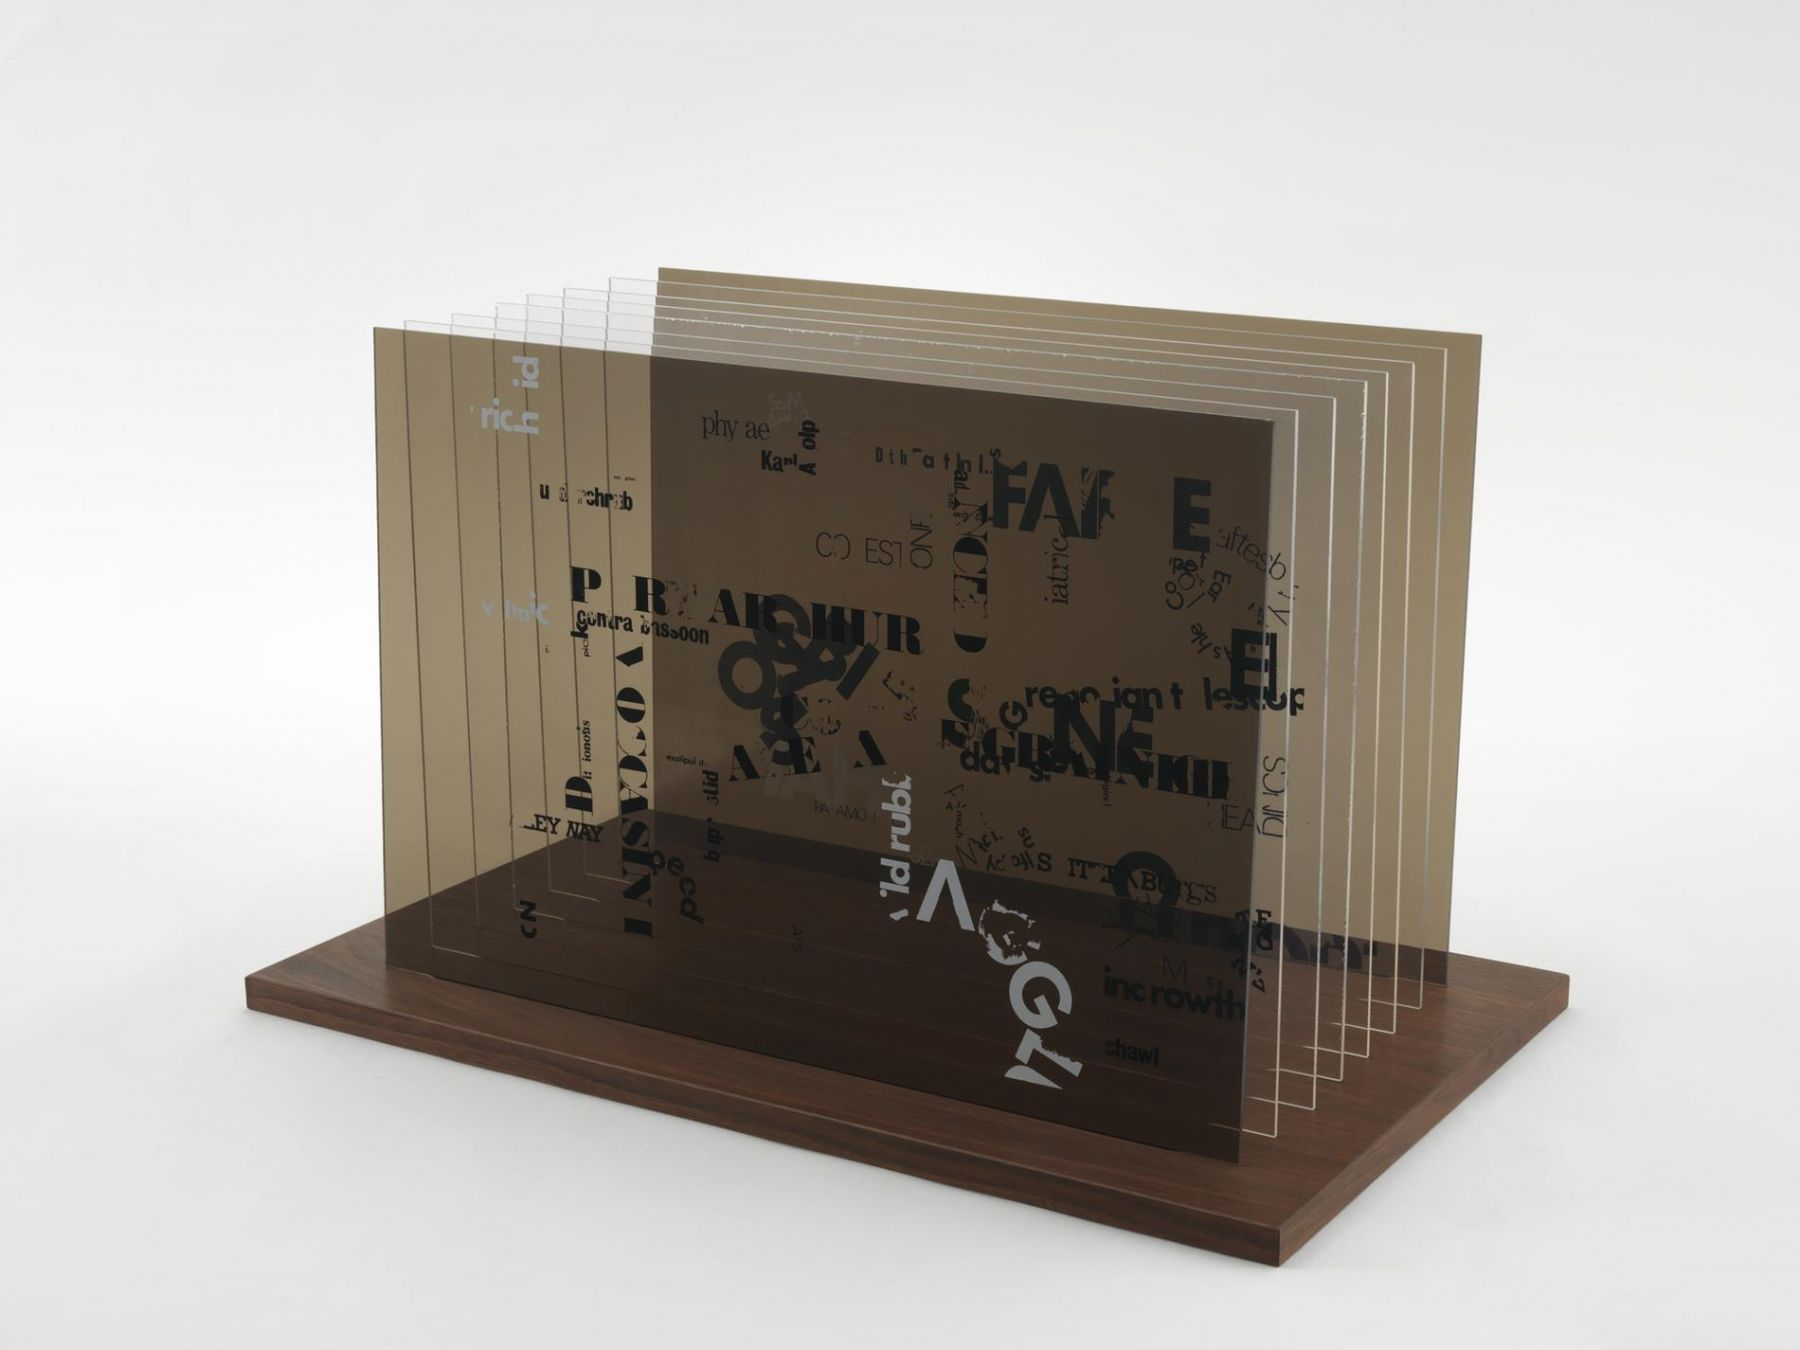 , JOHN CAGE Not Wanting to Say Anything About Marcel Plexigram I, 1969 Screenprint on eight Plexiglas panels with walnut base 14 x 20 x 1/8 in. (35.6 x 50.8 x 0.3 cm)